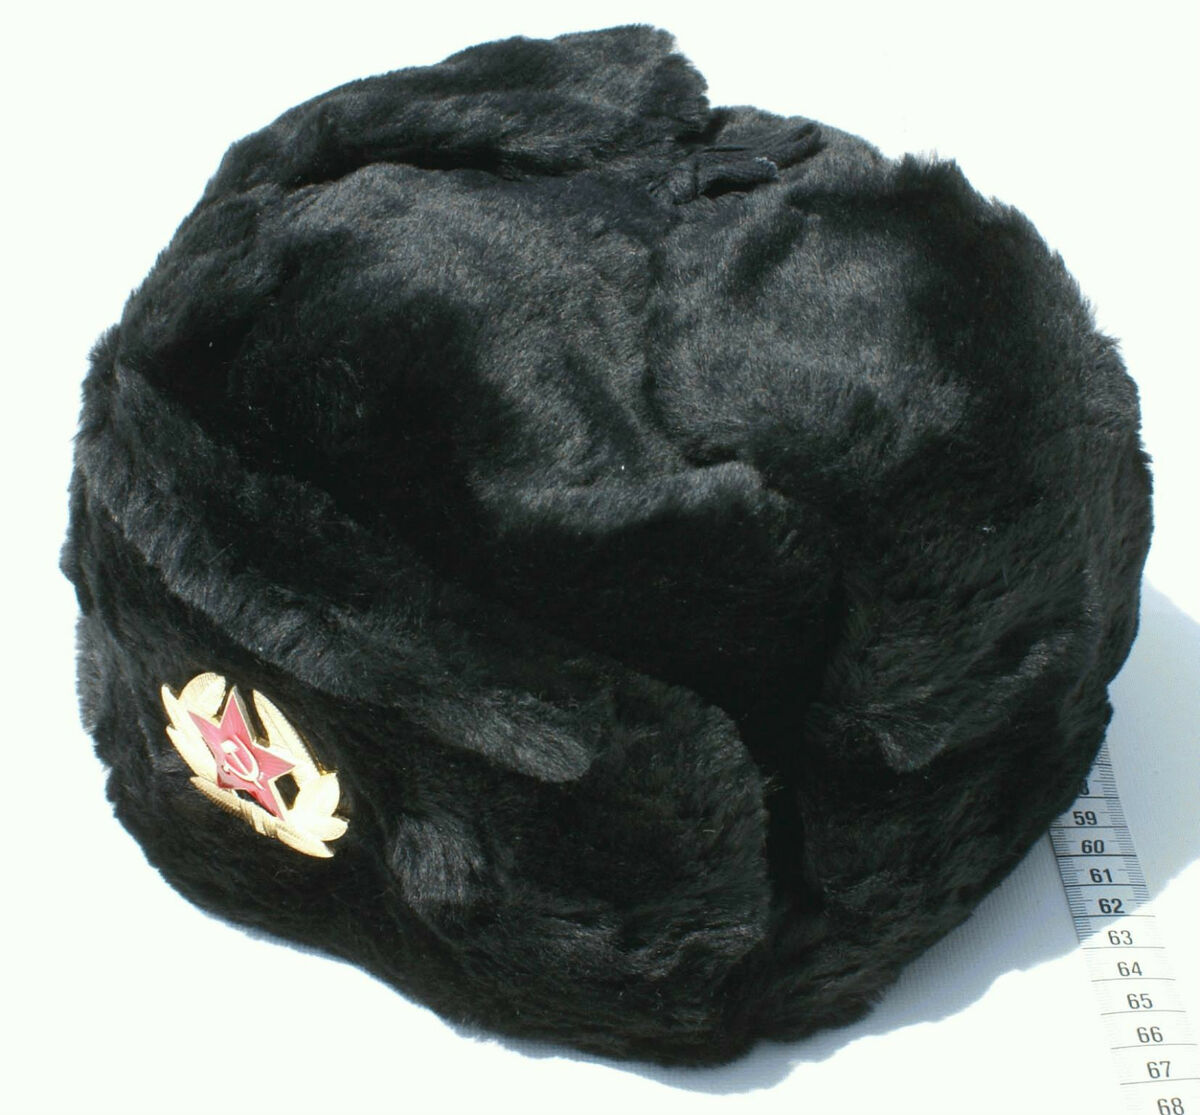 d47067b3e370a Russian Soviet Black Military Ushanka Winter Hat Army Cold War USSR Emblem  Sign